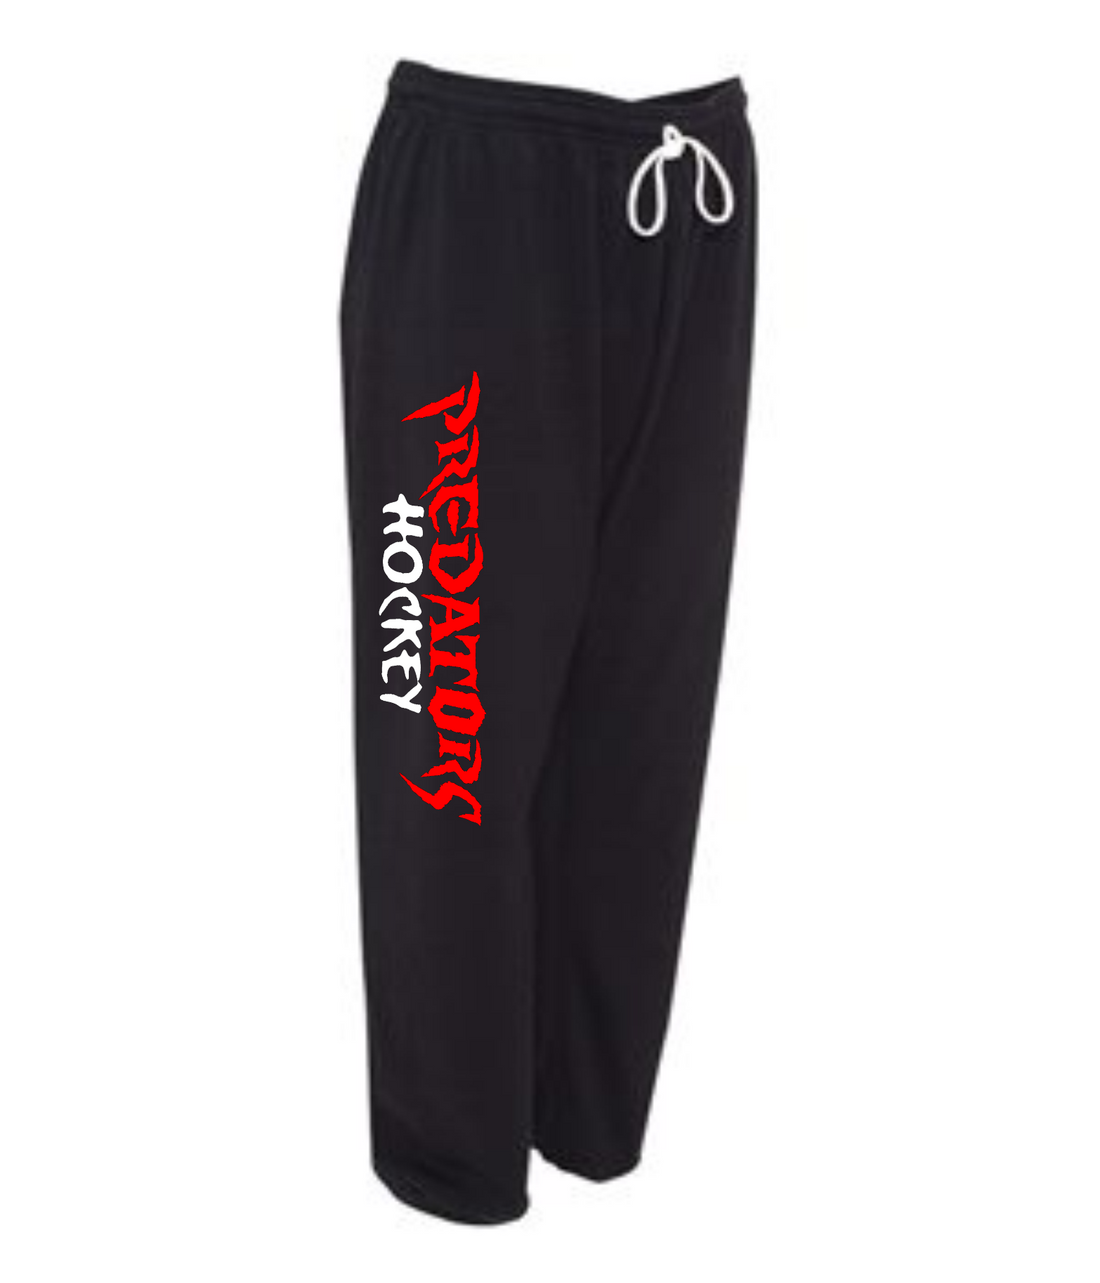 PREDATORS SCRUNCHIE SWEATPANTS (SCREEN OR GLITTER)